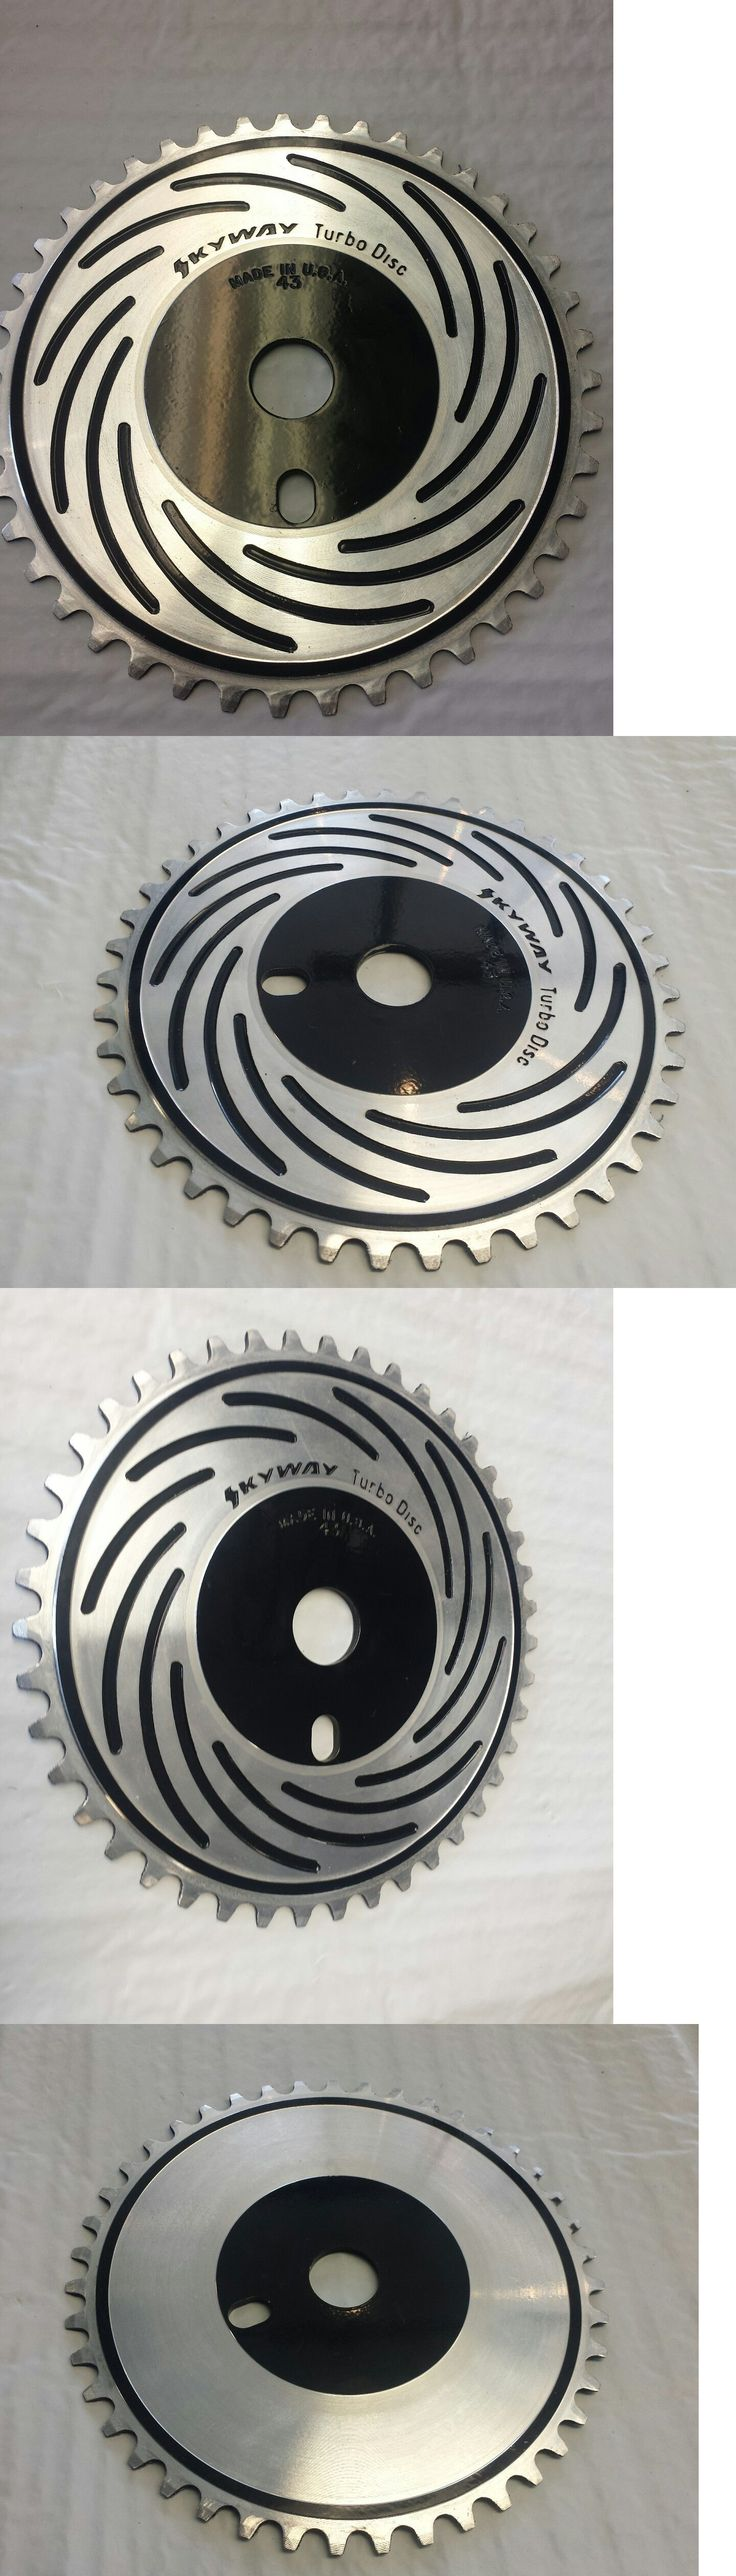 Vintage Bicycle Parts 56197: (Nos) Vintage Skyway Turbo Disc 43T Cnc Bmx Sprocket - Black/Silver -> BUY IT NOW ONLY: $79.99 on eBay!